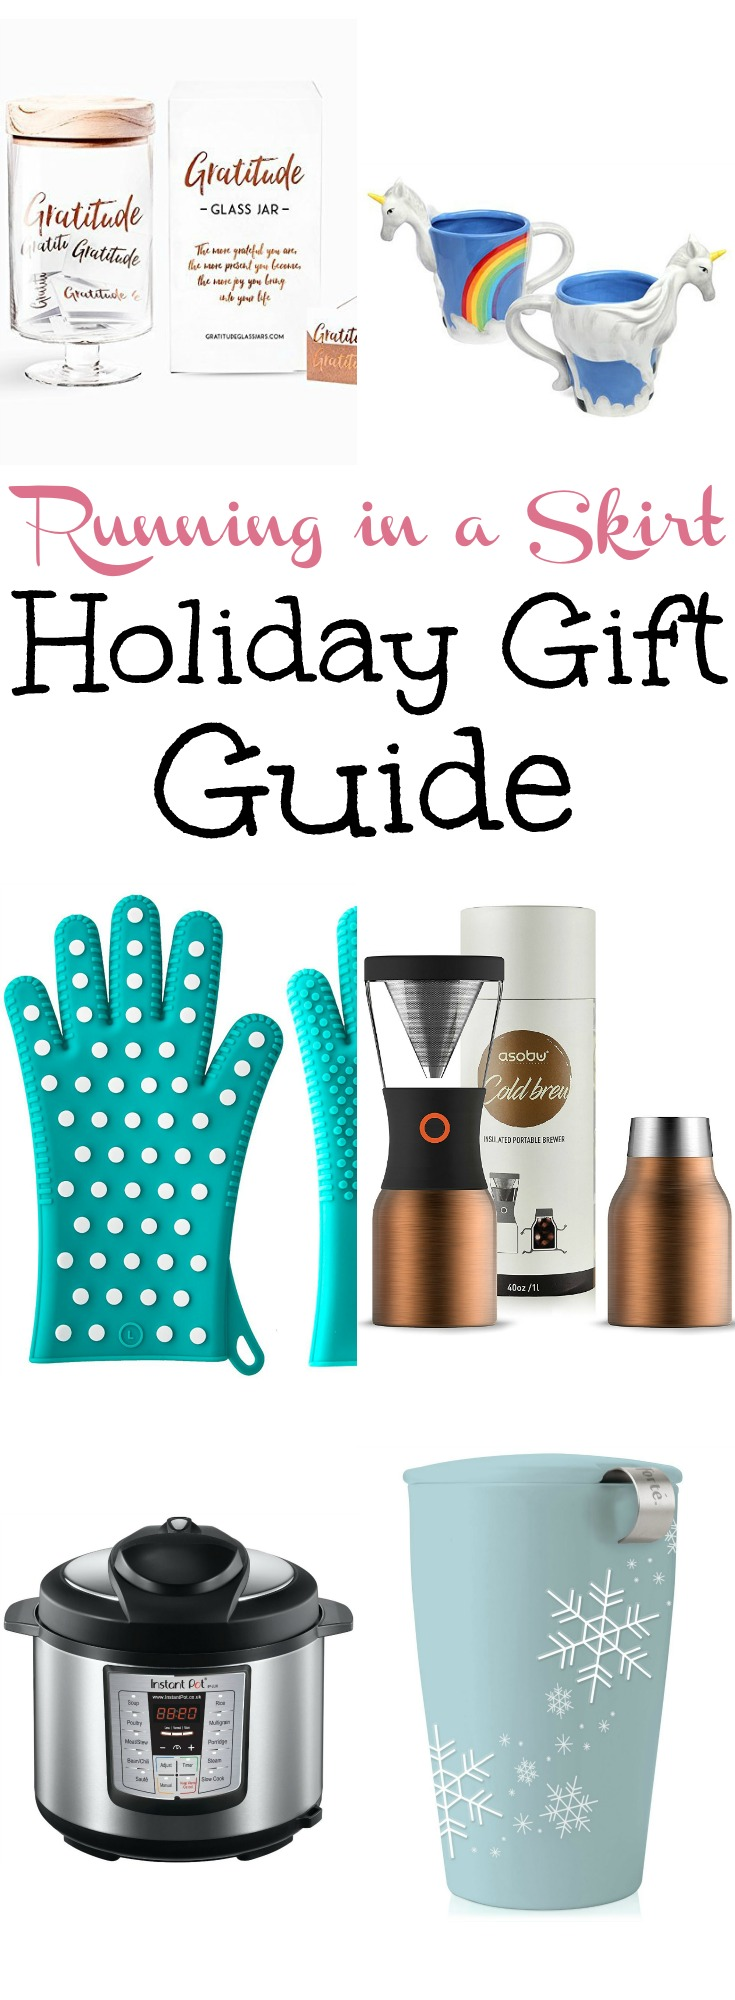 2017 Holiday Gift Guide for Her!  Includes cute gift ideas for women at any price point. / Running in a Skirt via @juliewunder